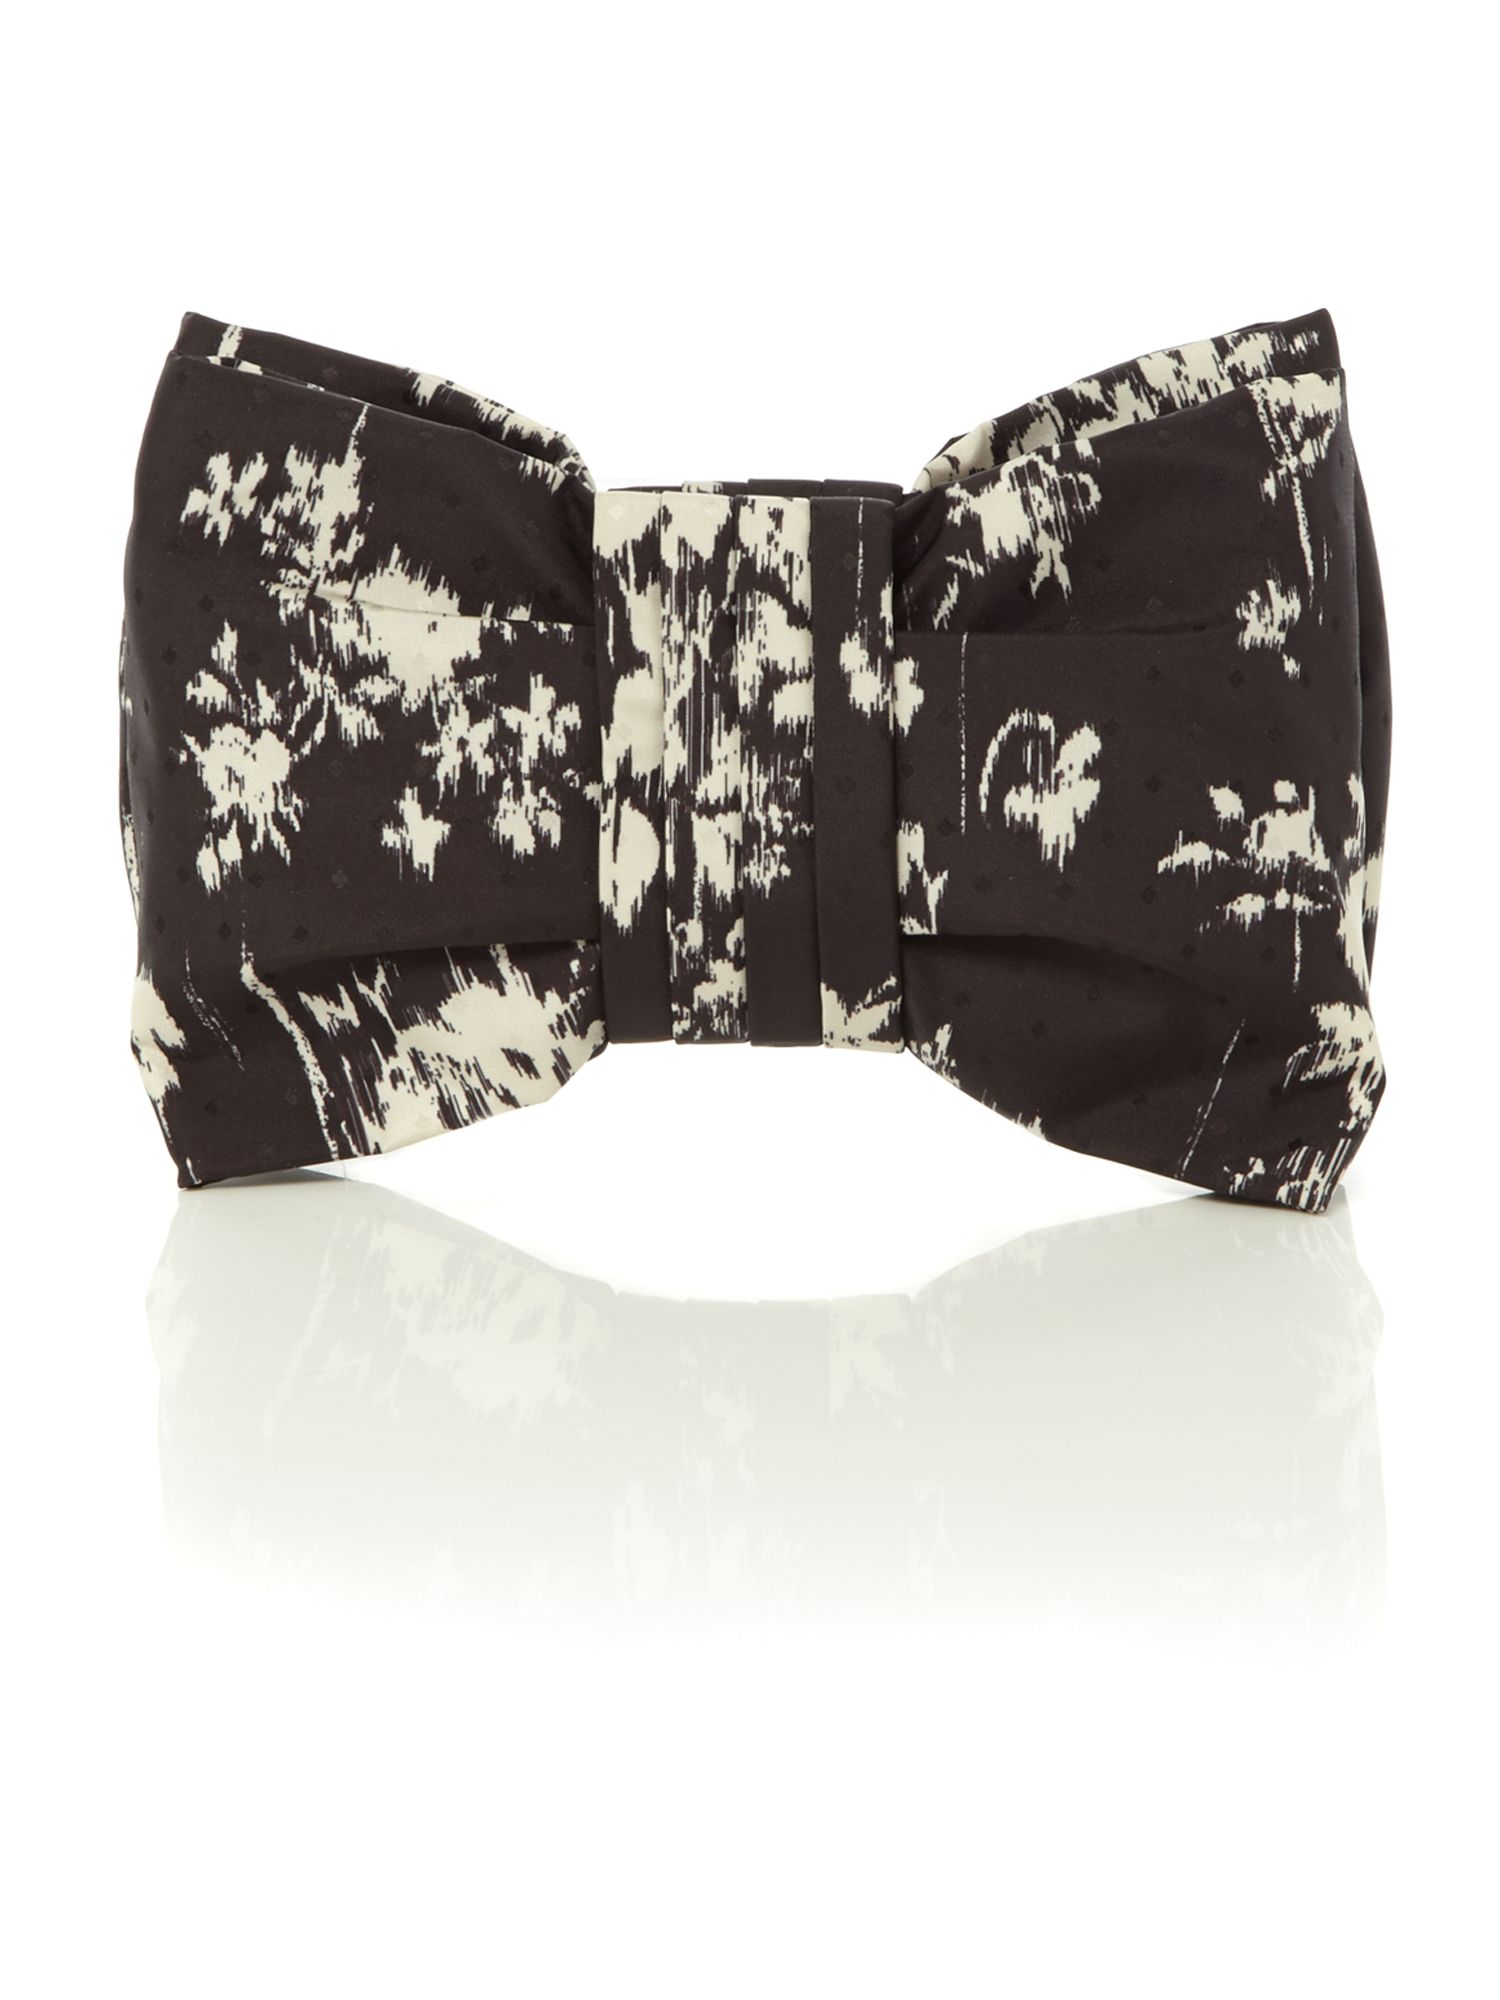 Monochrome printed bow clutch bag